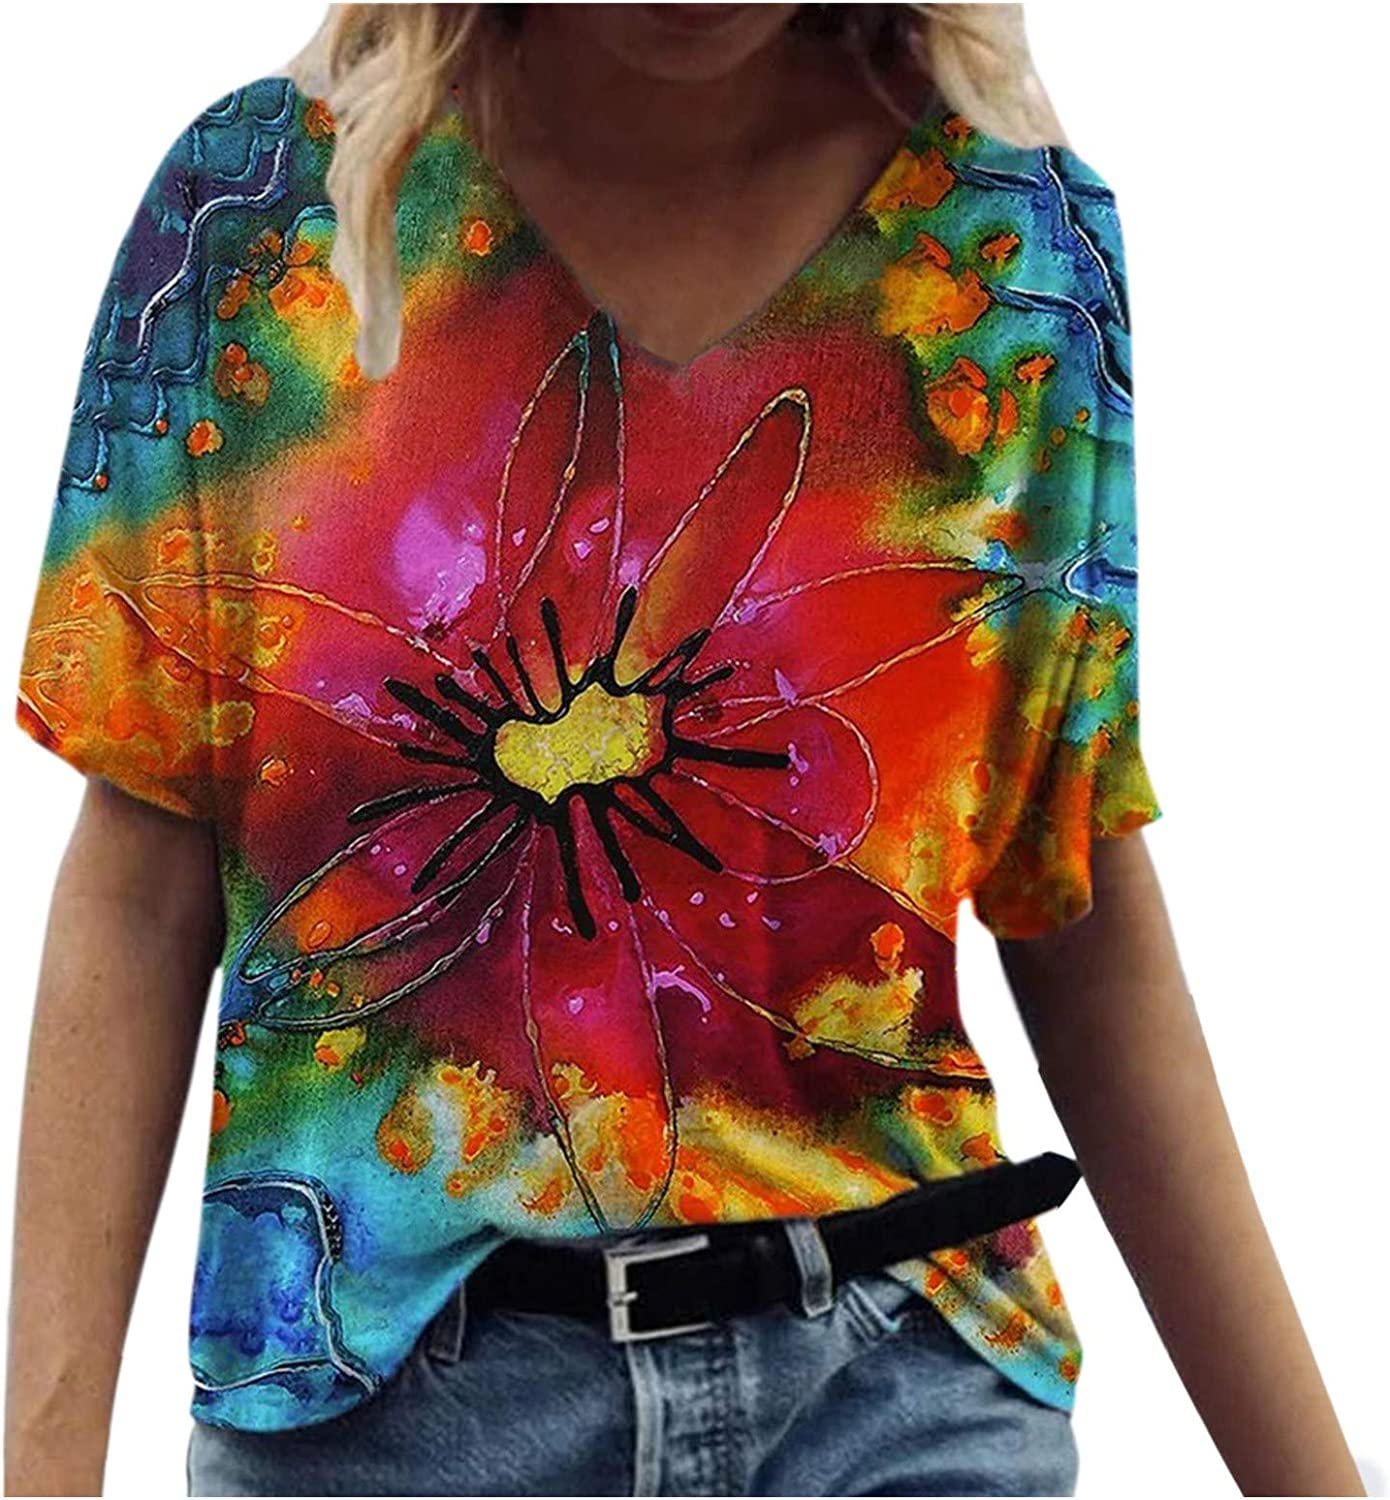 FABIURT Women Short Sleeve Tops,Womens Vintage Floral Printed V Neck T Shirts Summer Ladies Casual Loose Tee Blouse Tops